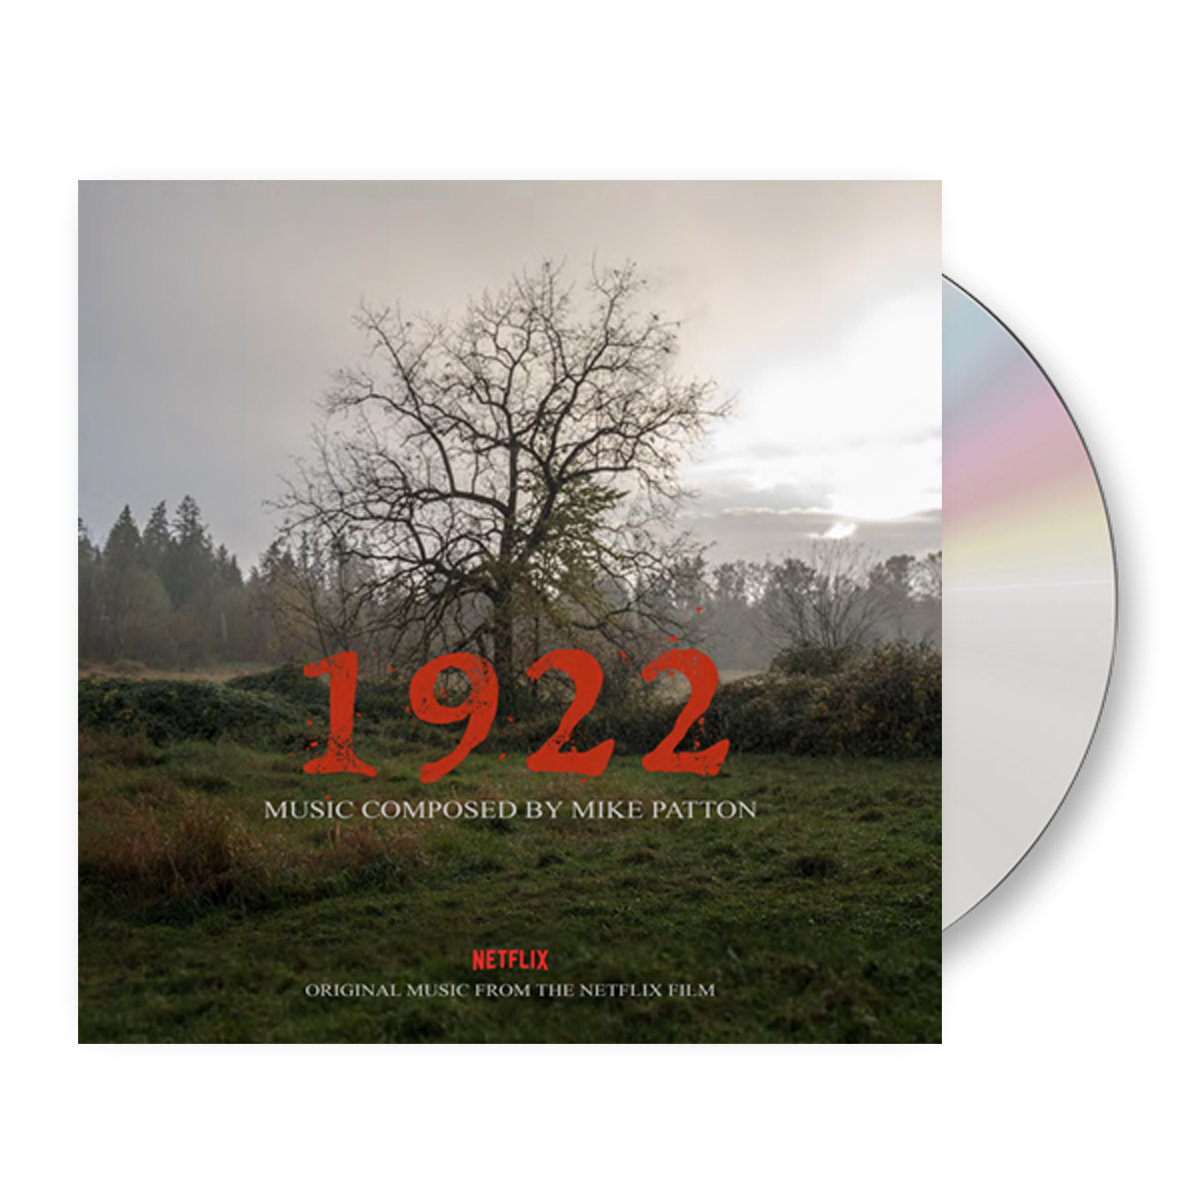 Afbeeldingsresultaat voor OST-1922 (Composed by Mike Patton), CD & LP